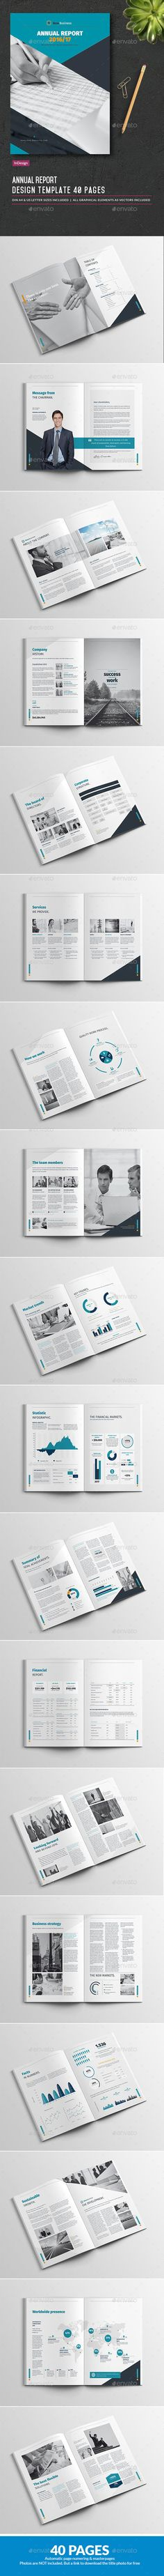 Annual Report 2016/17 Features:Indesign Template for a 40 pages Annual Report. Format DIN A4 and US letter with 3mm / 0.125 inches